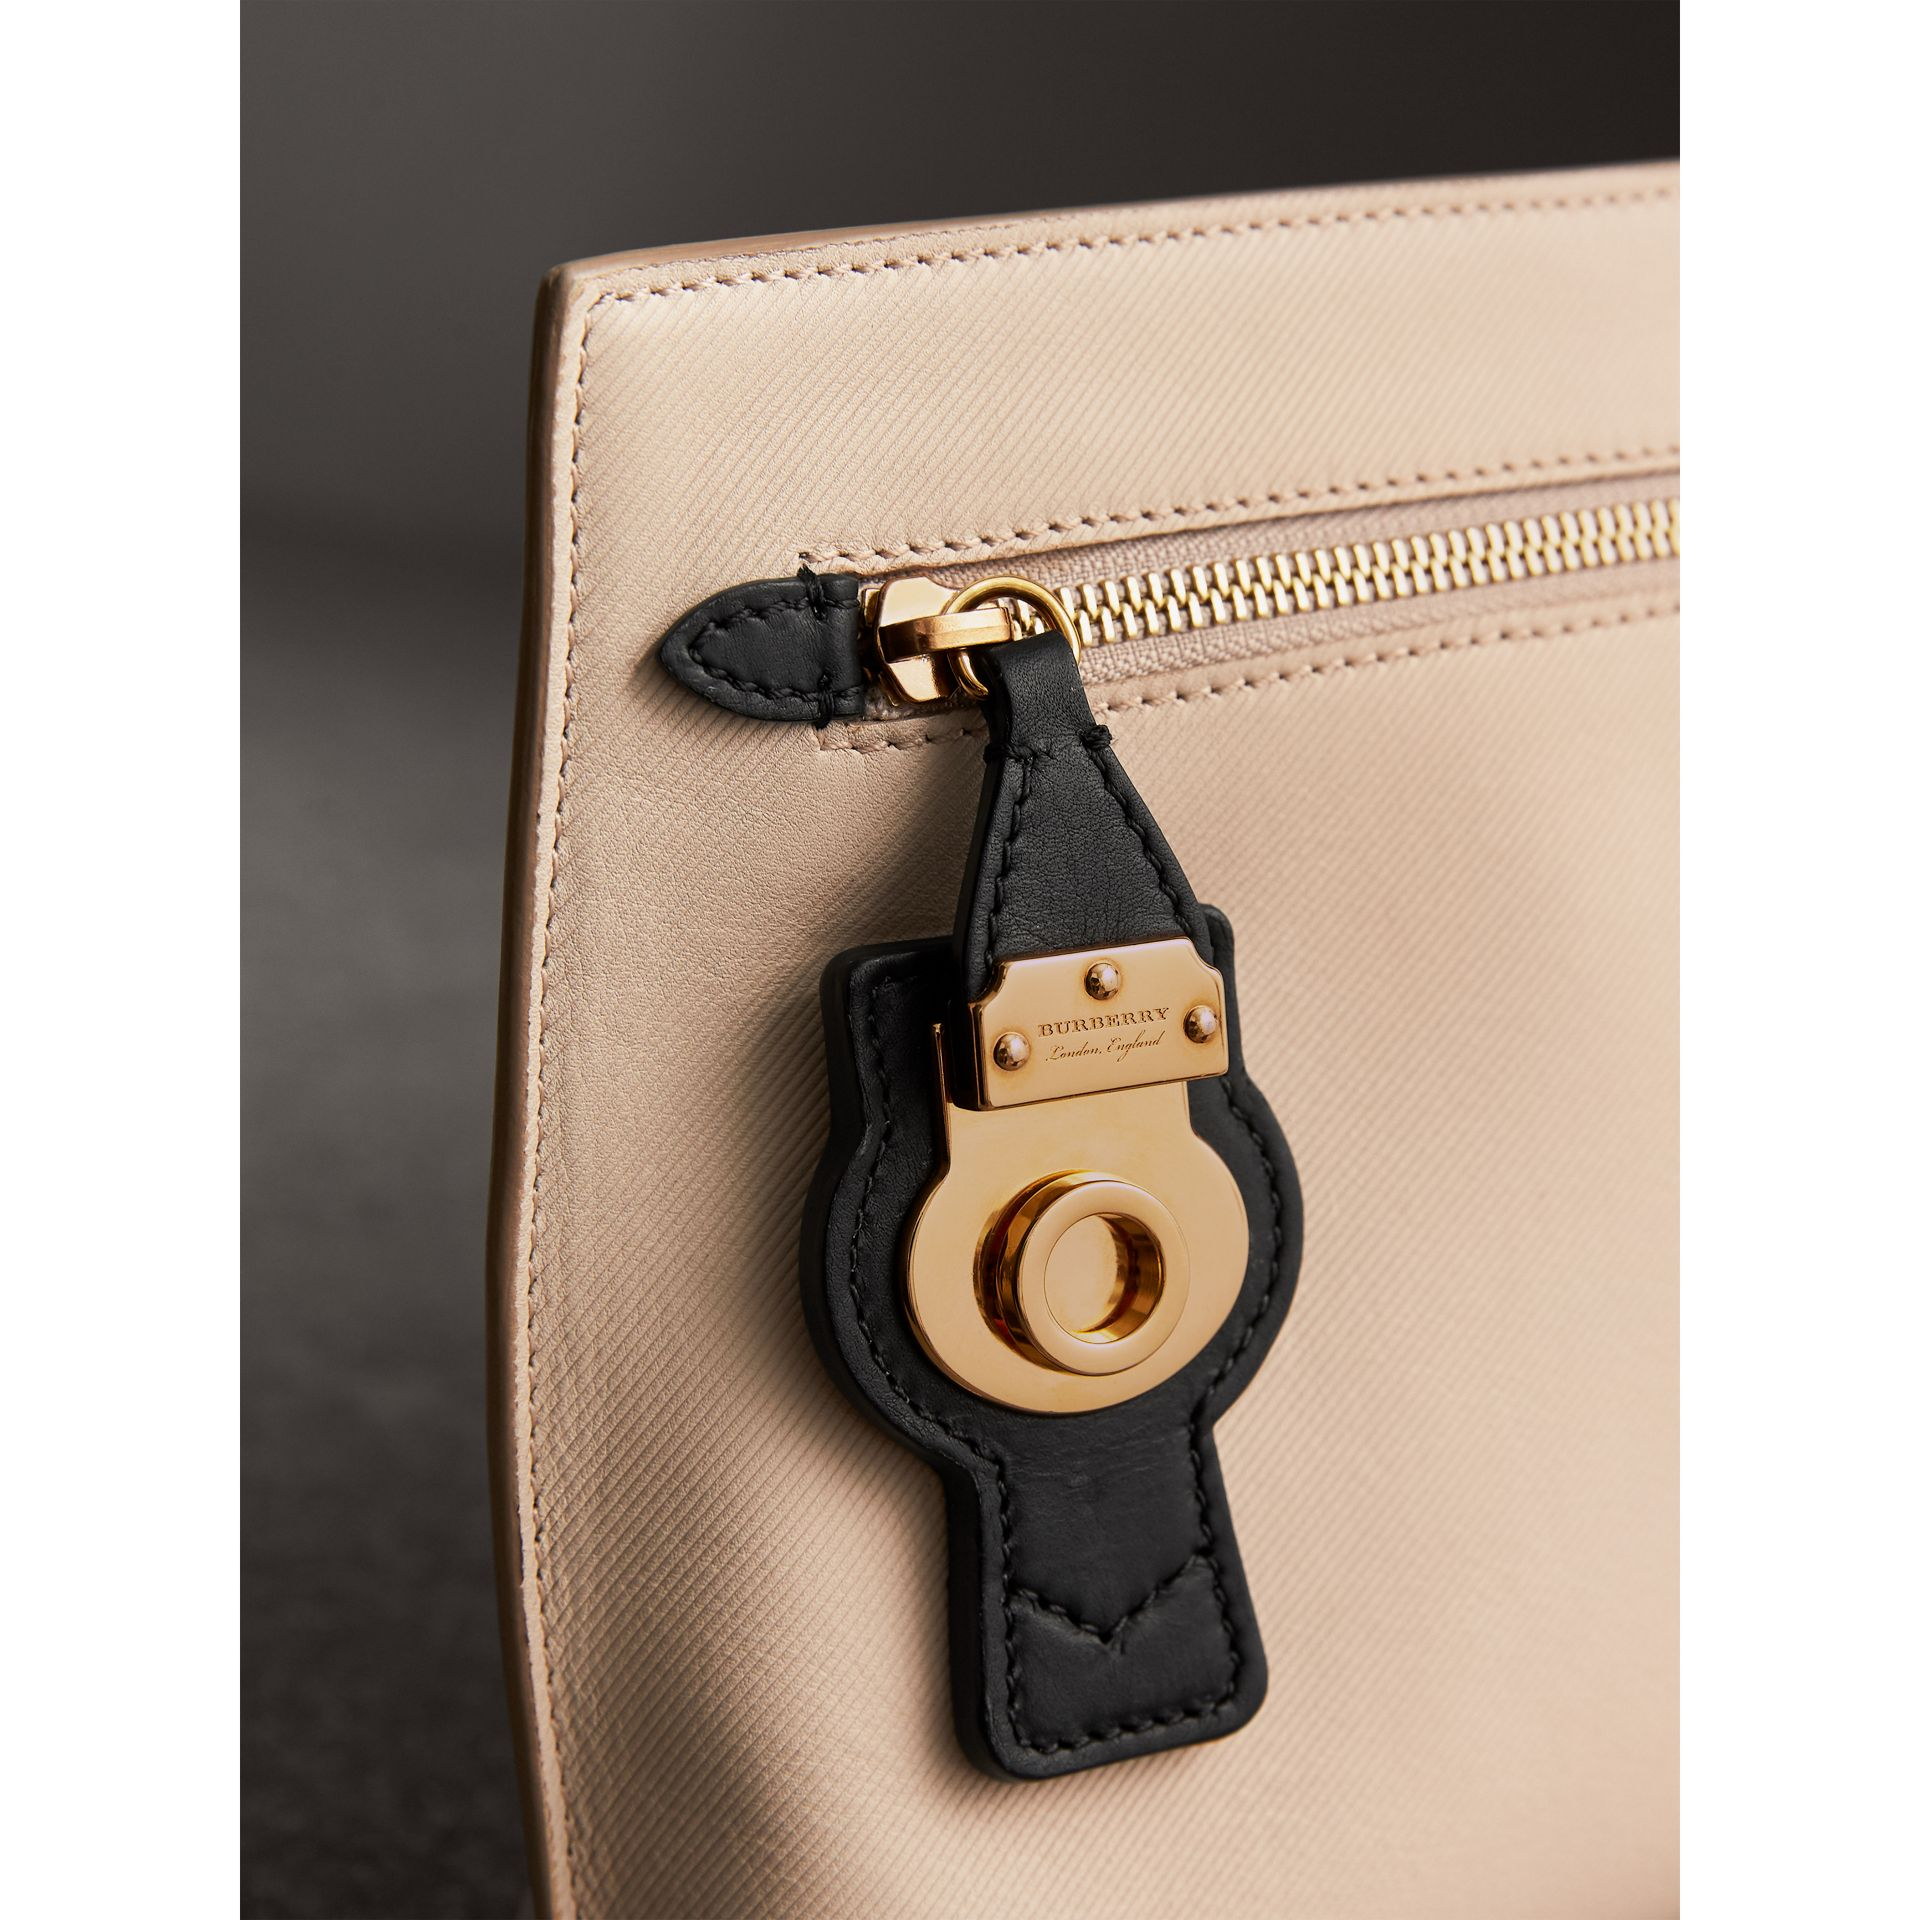 Two-tone Trench Leather Wristlet Pouch in Limestone/black - Women | Burberry - gallery image 2